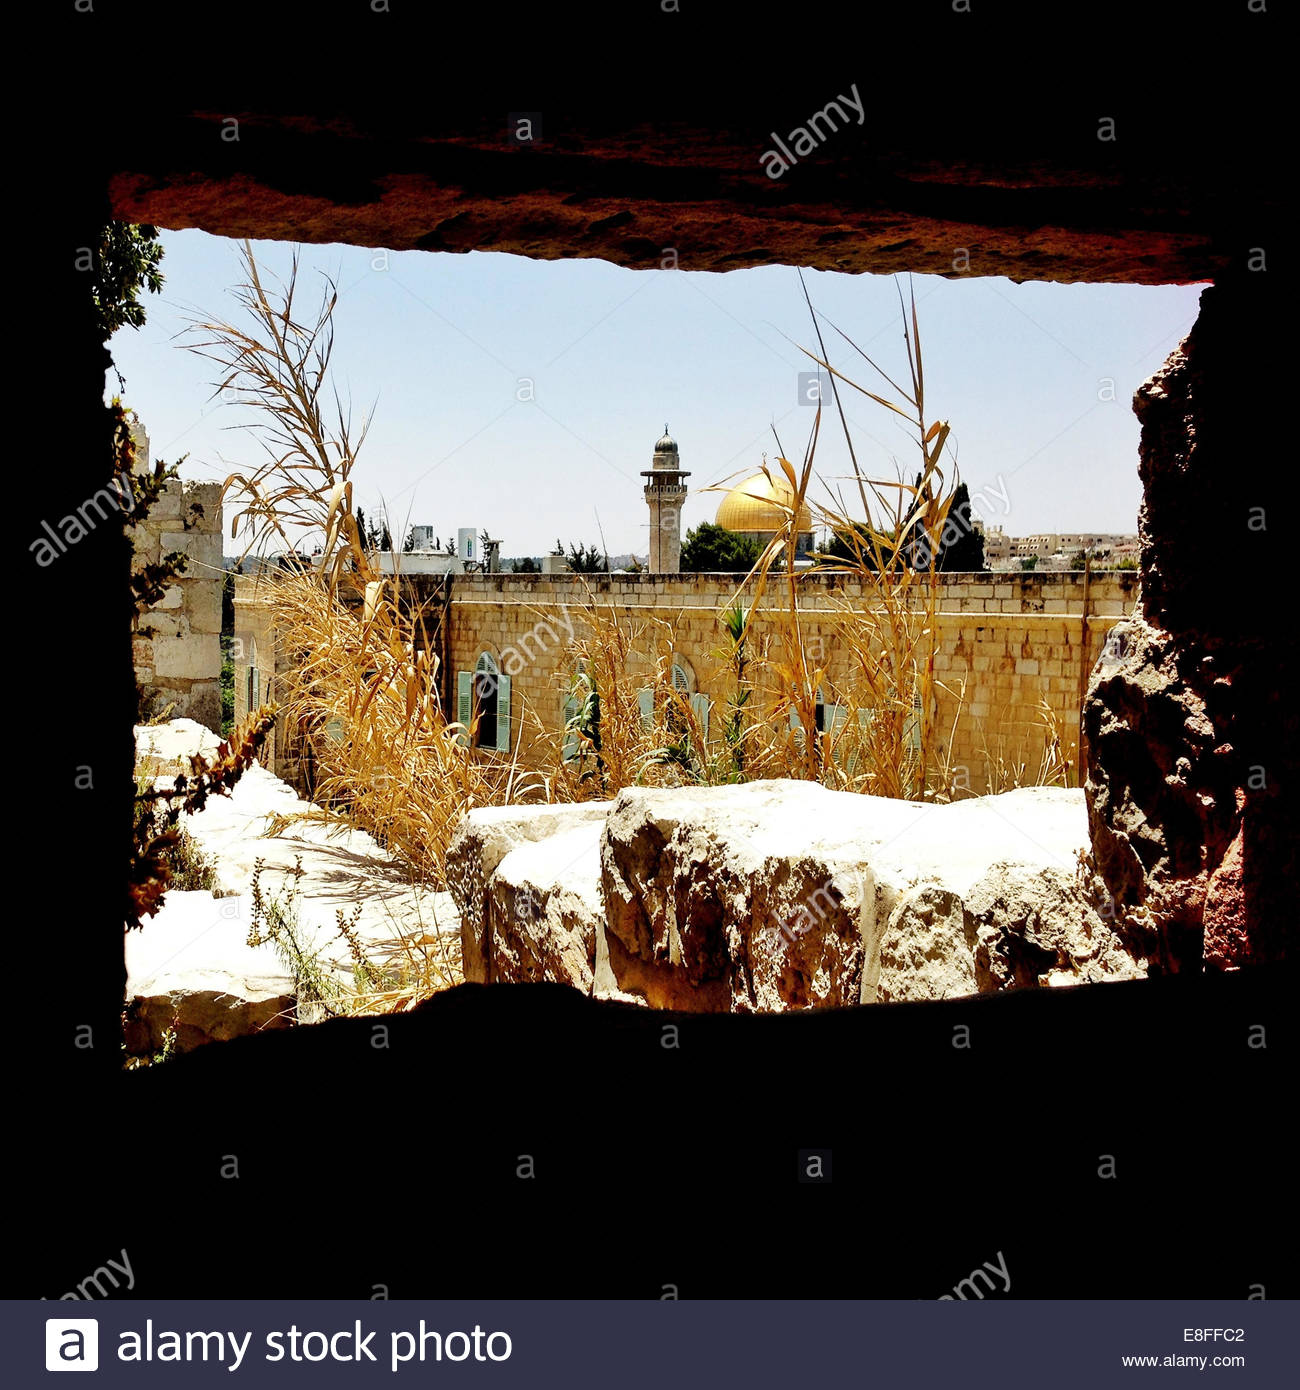 Israel, Jerusalem, Dome of the Rock in winter - Stock Image